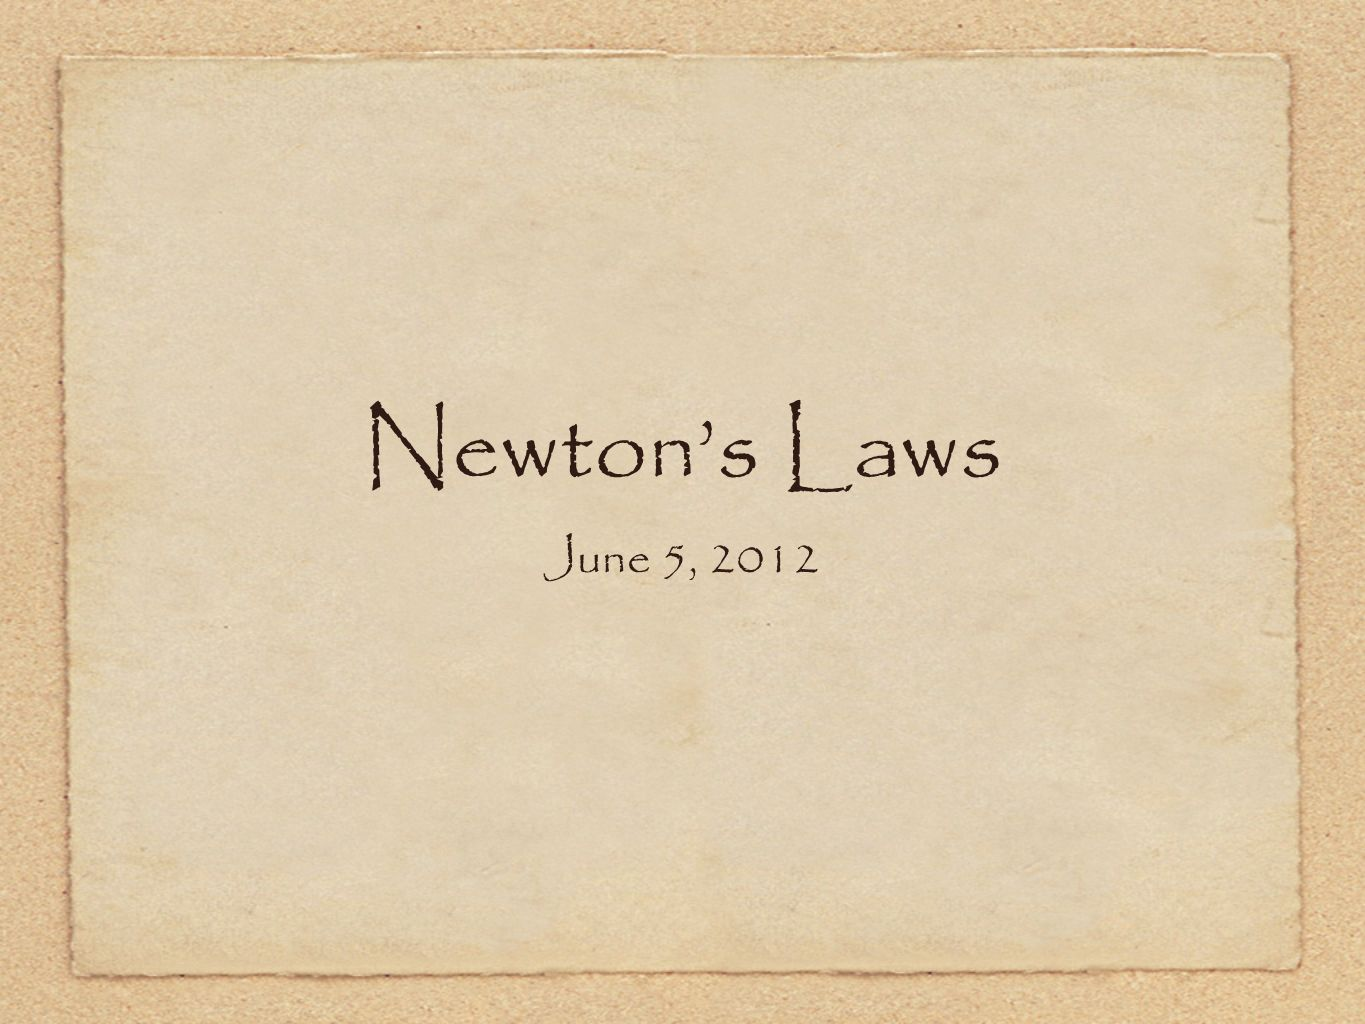 Newton's Laws June 5, 2012